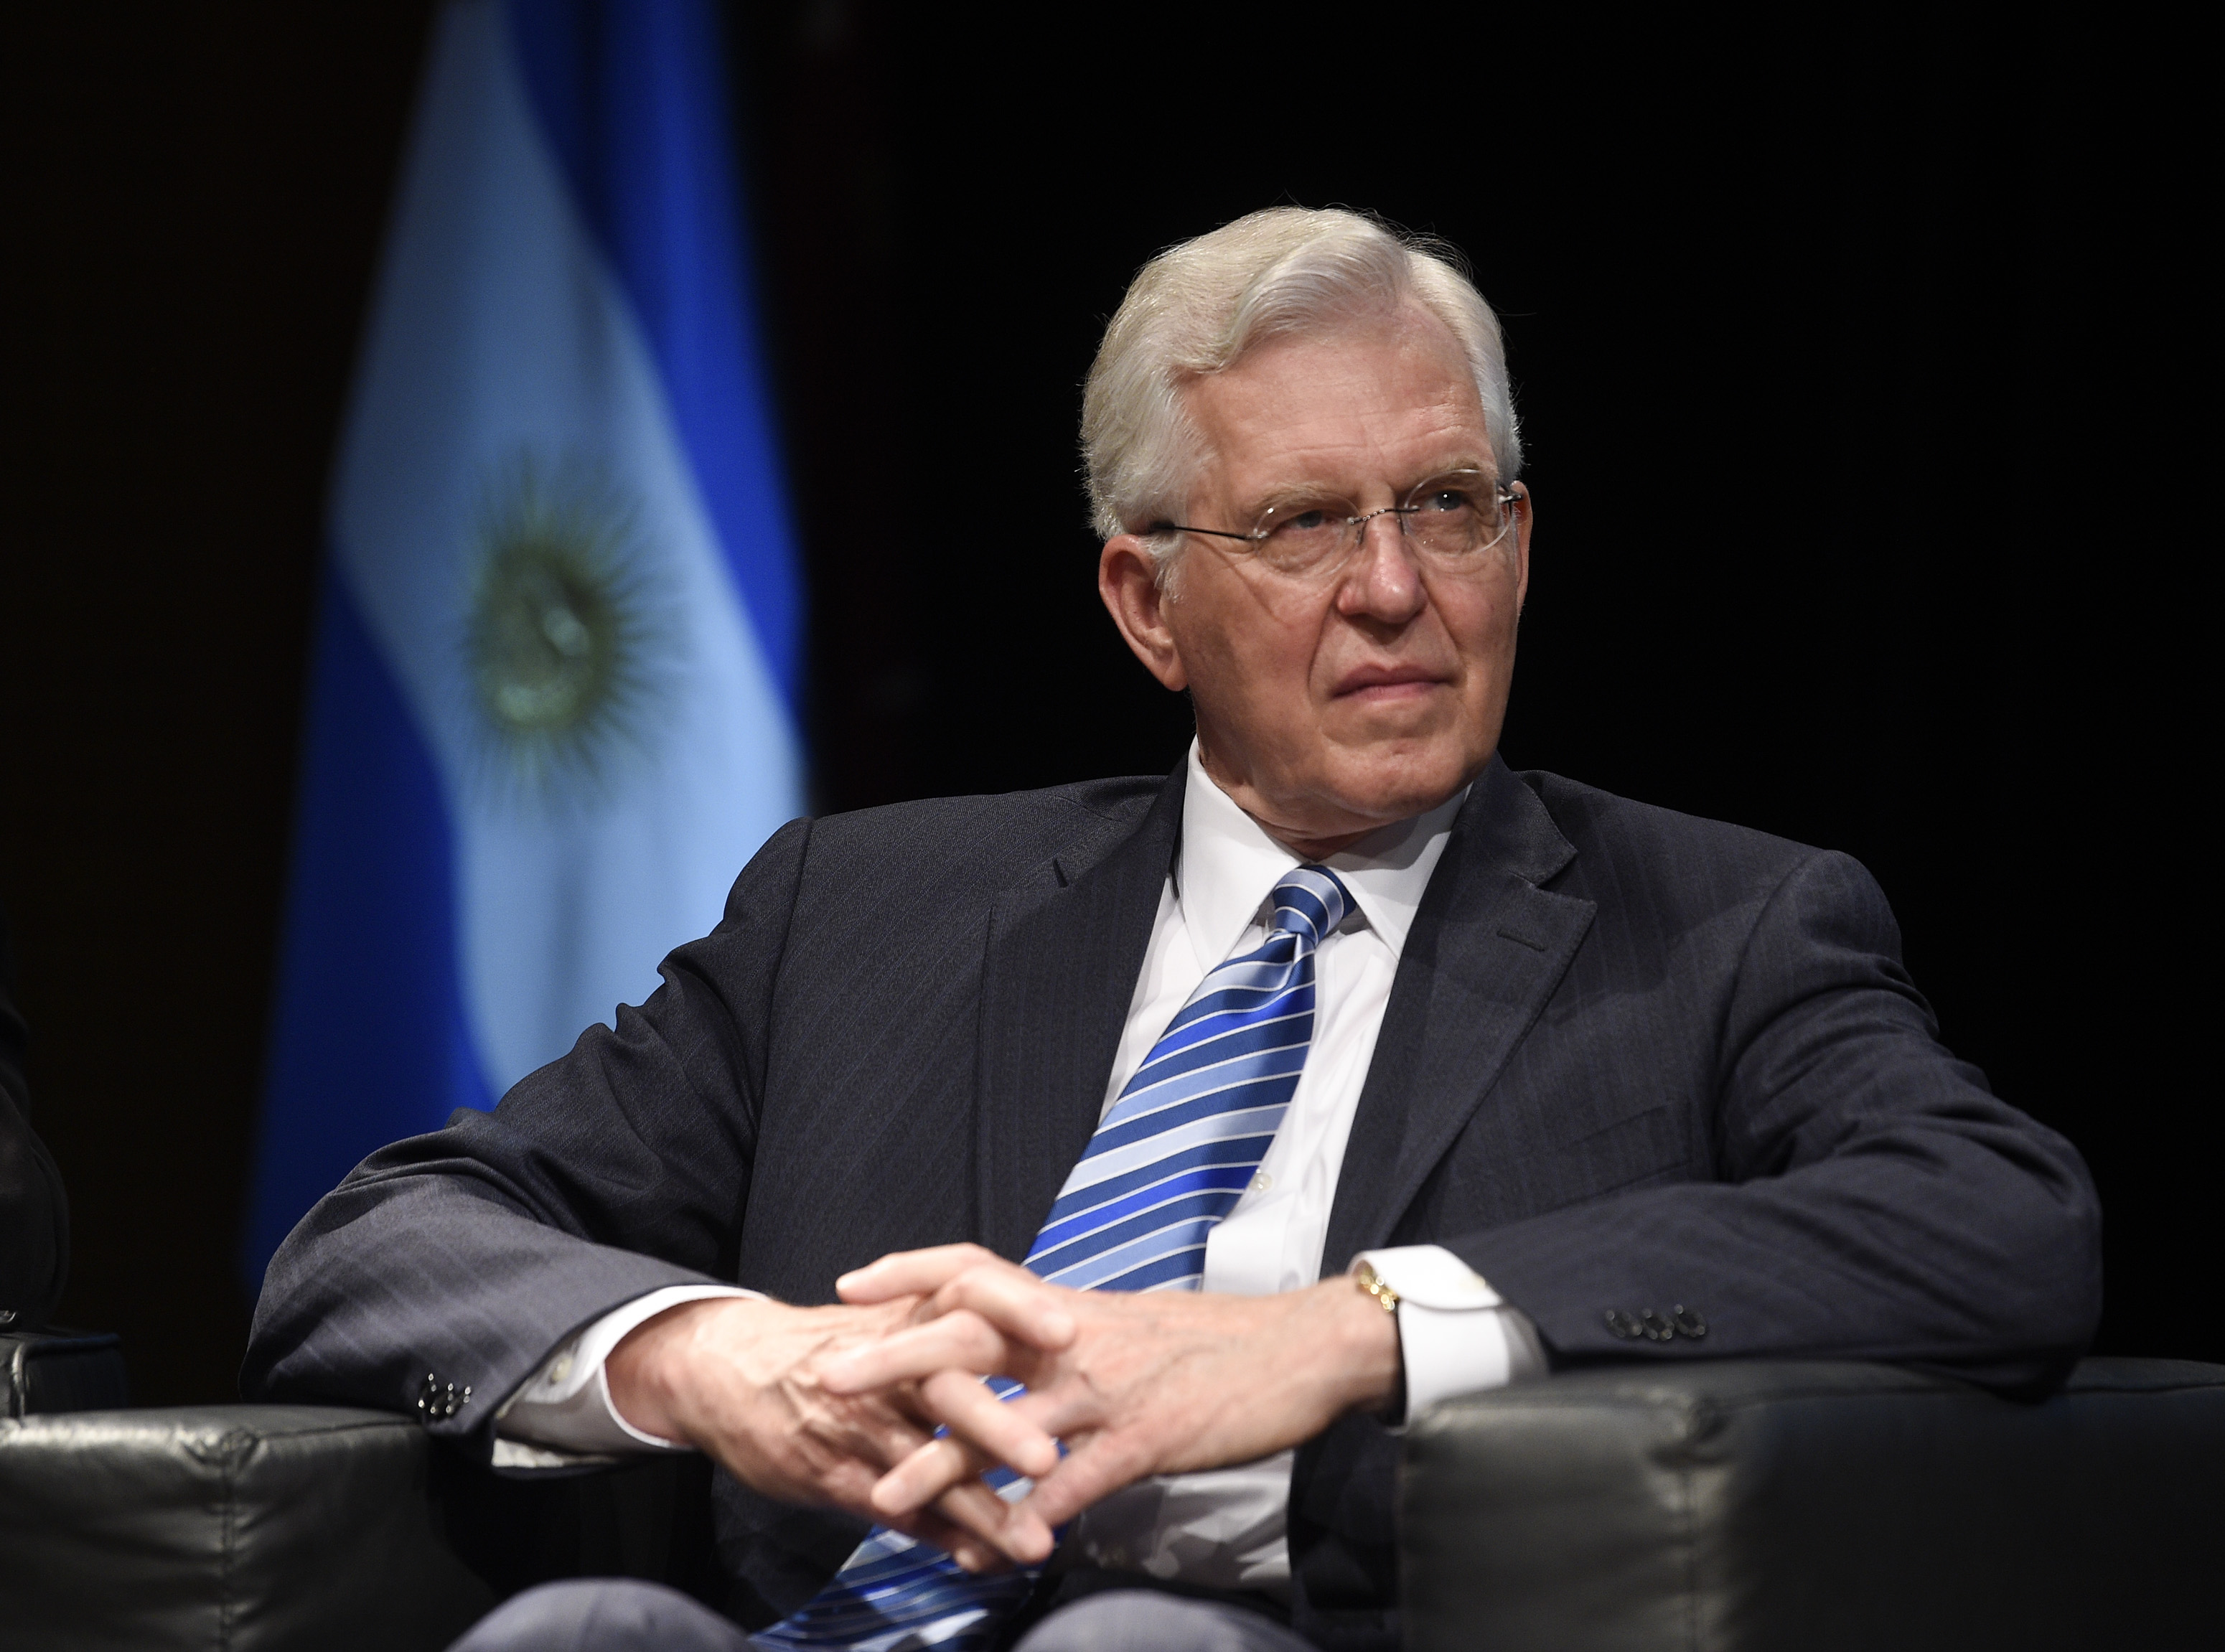 Elder D. Todd Christofferson of the Quorum of the Twelve Apostles is pictured before his speech at the G20 Interfaith Forum in Buenos Aires, Argentina, on Wednesday, Sept. 26, 2018.